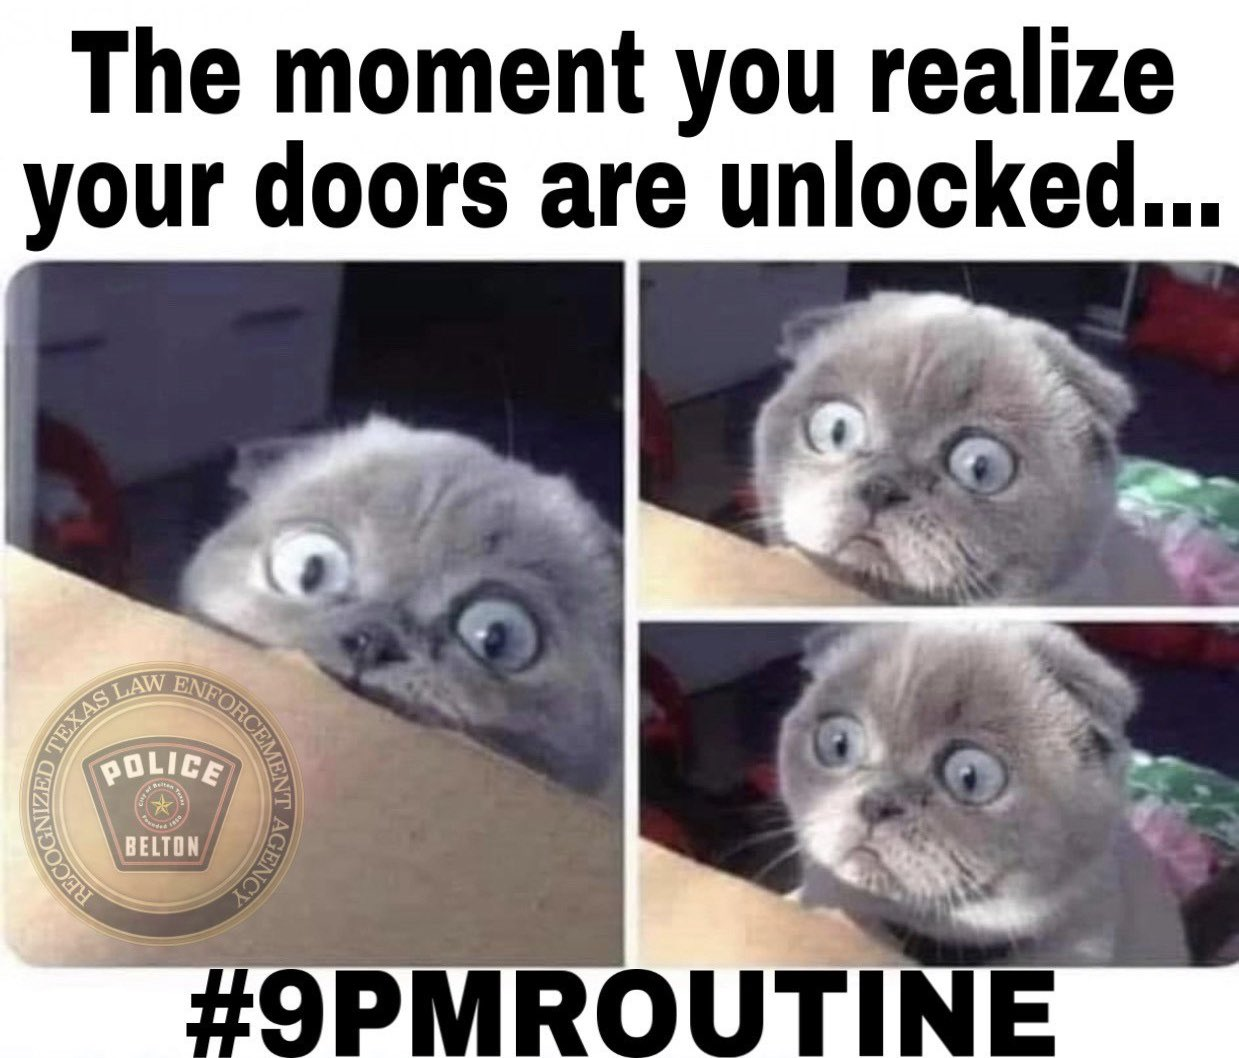 It's time to eliminate the opportunity for crime. Lock it up Belton. #9PMRoutine! https://t.co/sHiyHnVWlu